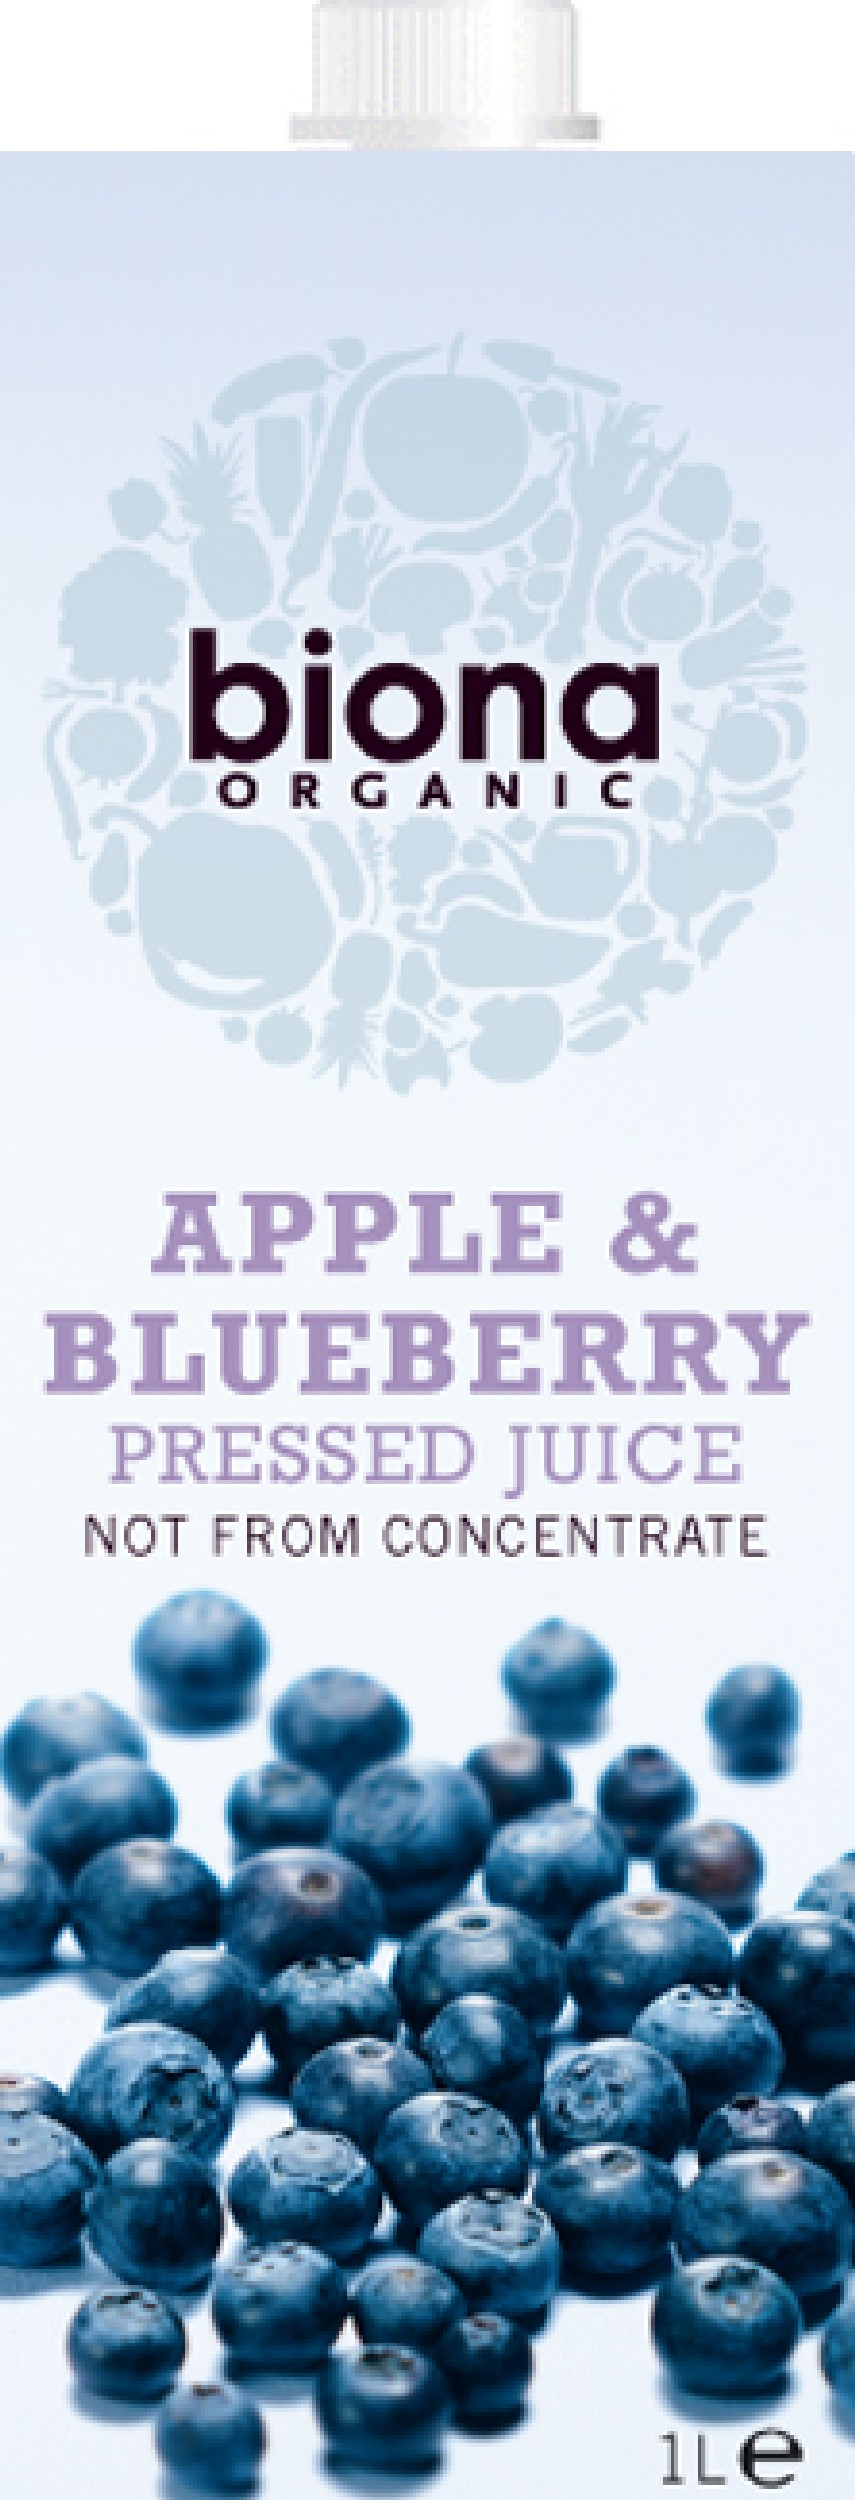 Biona_Apple_Blueberry_tetra.JPG